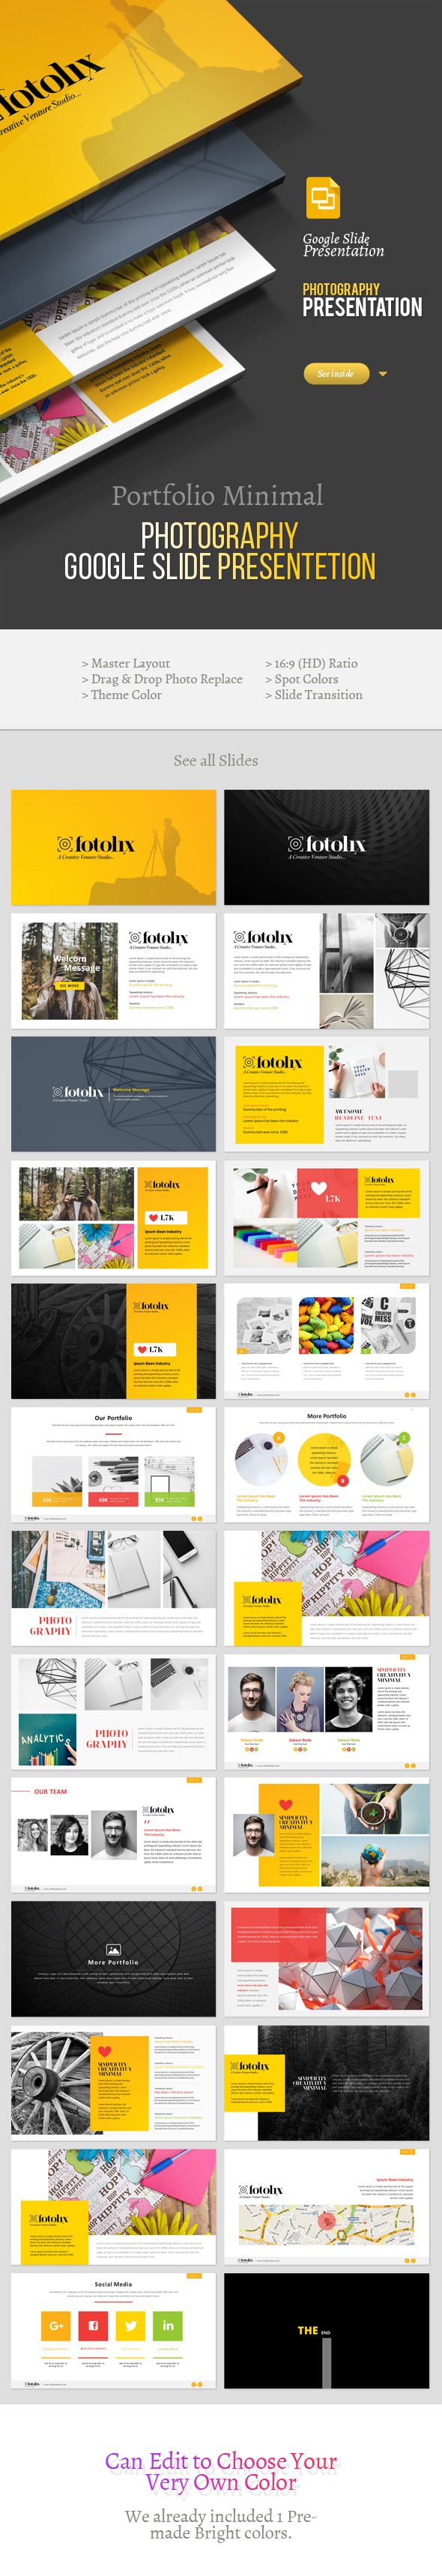 Portfolio & Photography Google Slide Presentation - Google Slides Presentation Templates